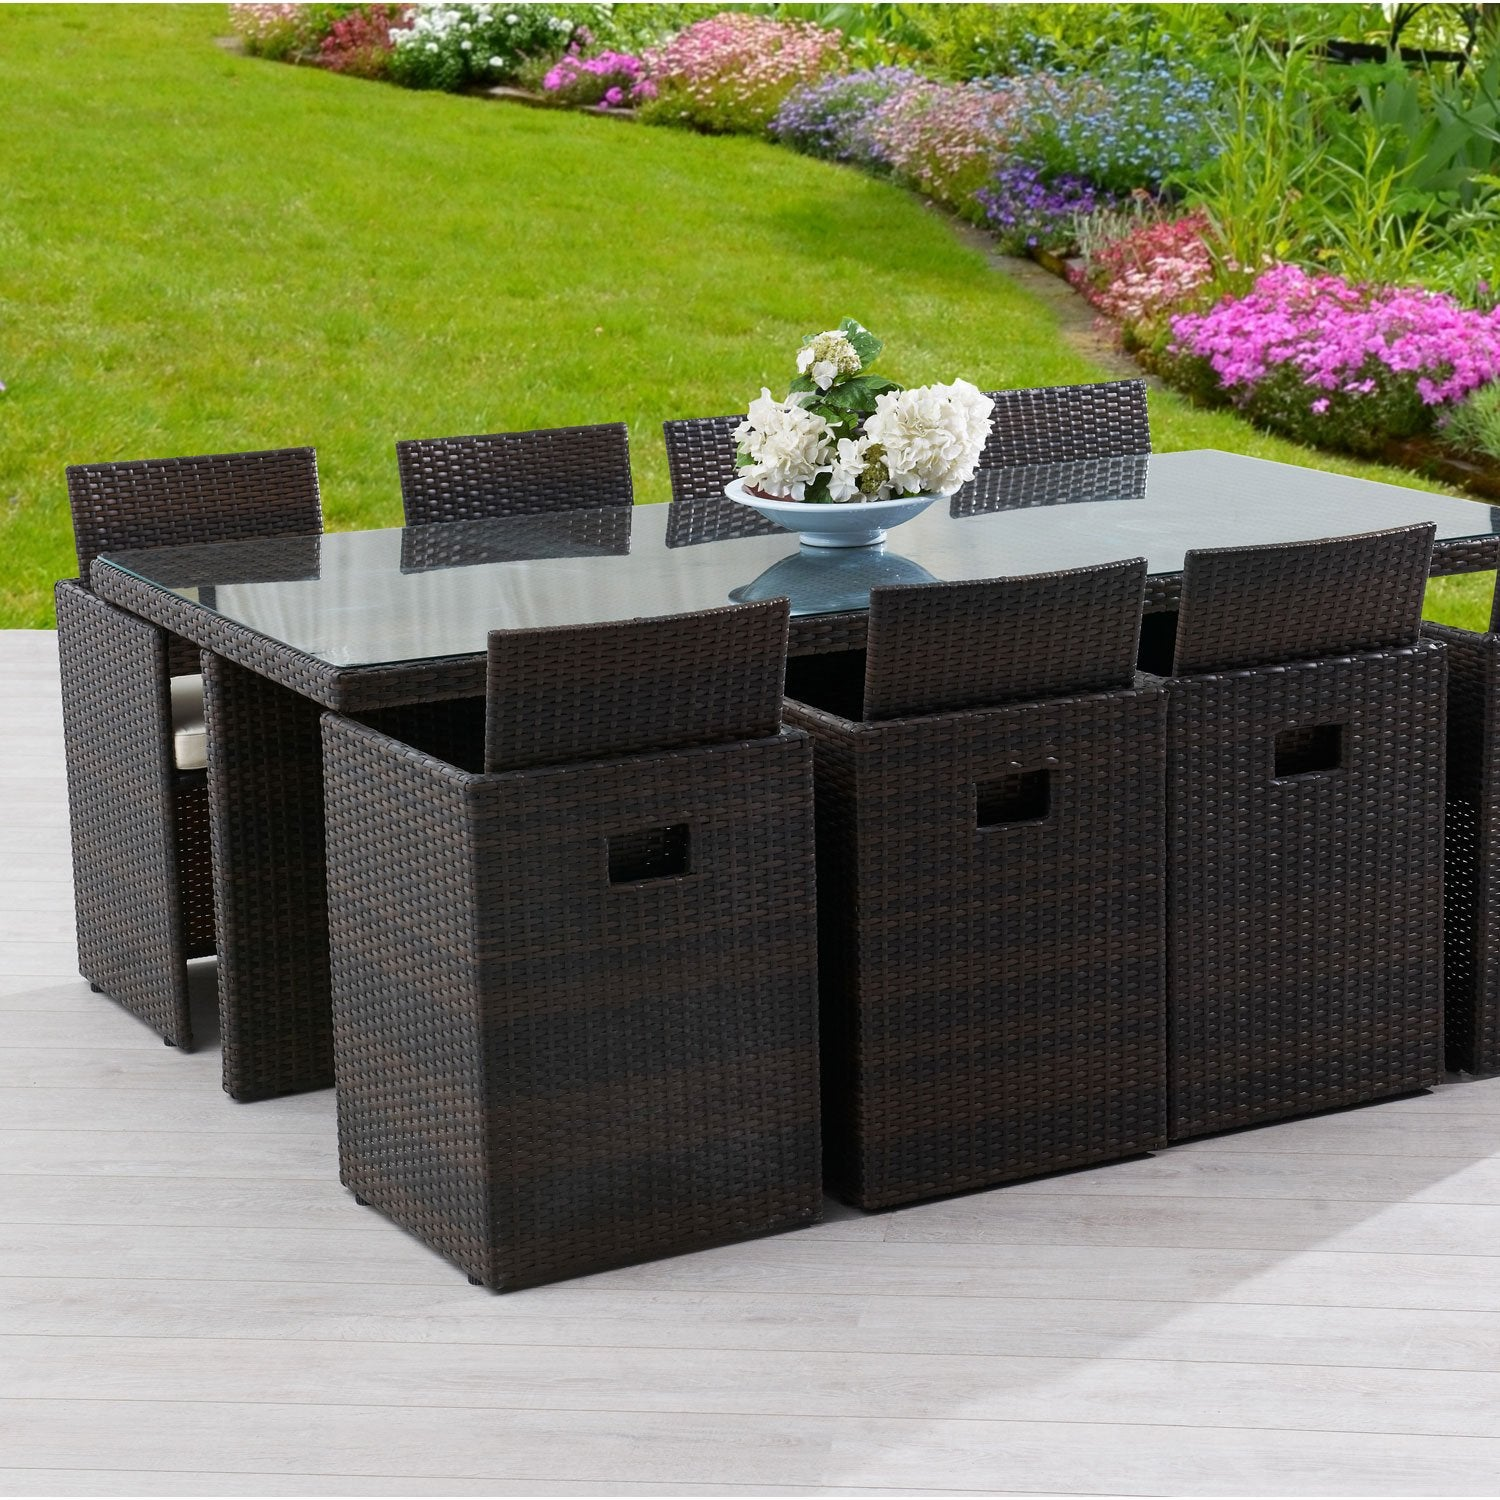 Salon de jardin encastrable r sine tress e marron 1 table - Salon de jardin en rotin pas cher ...